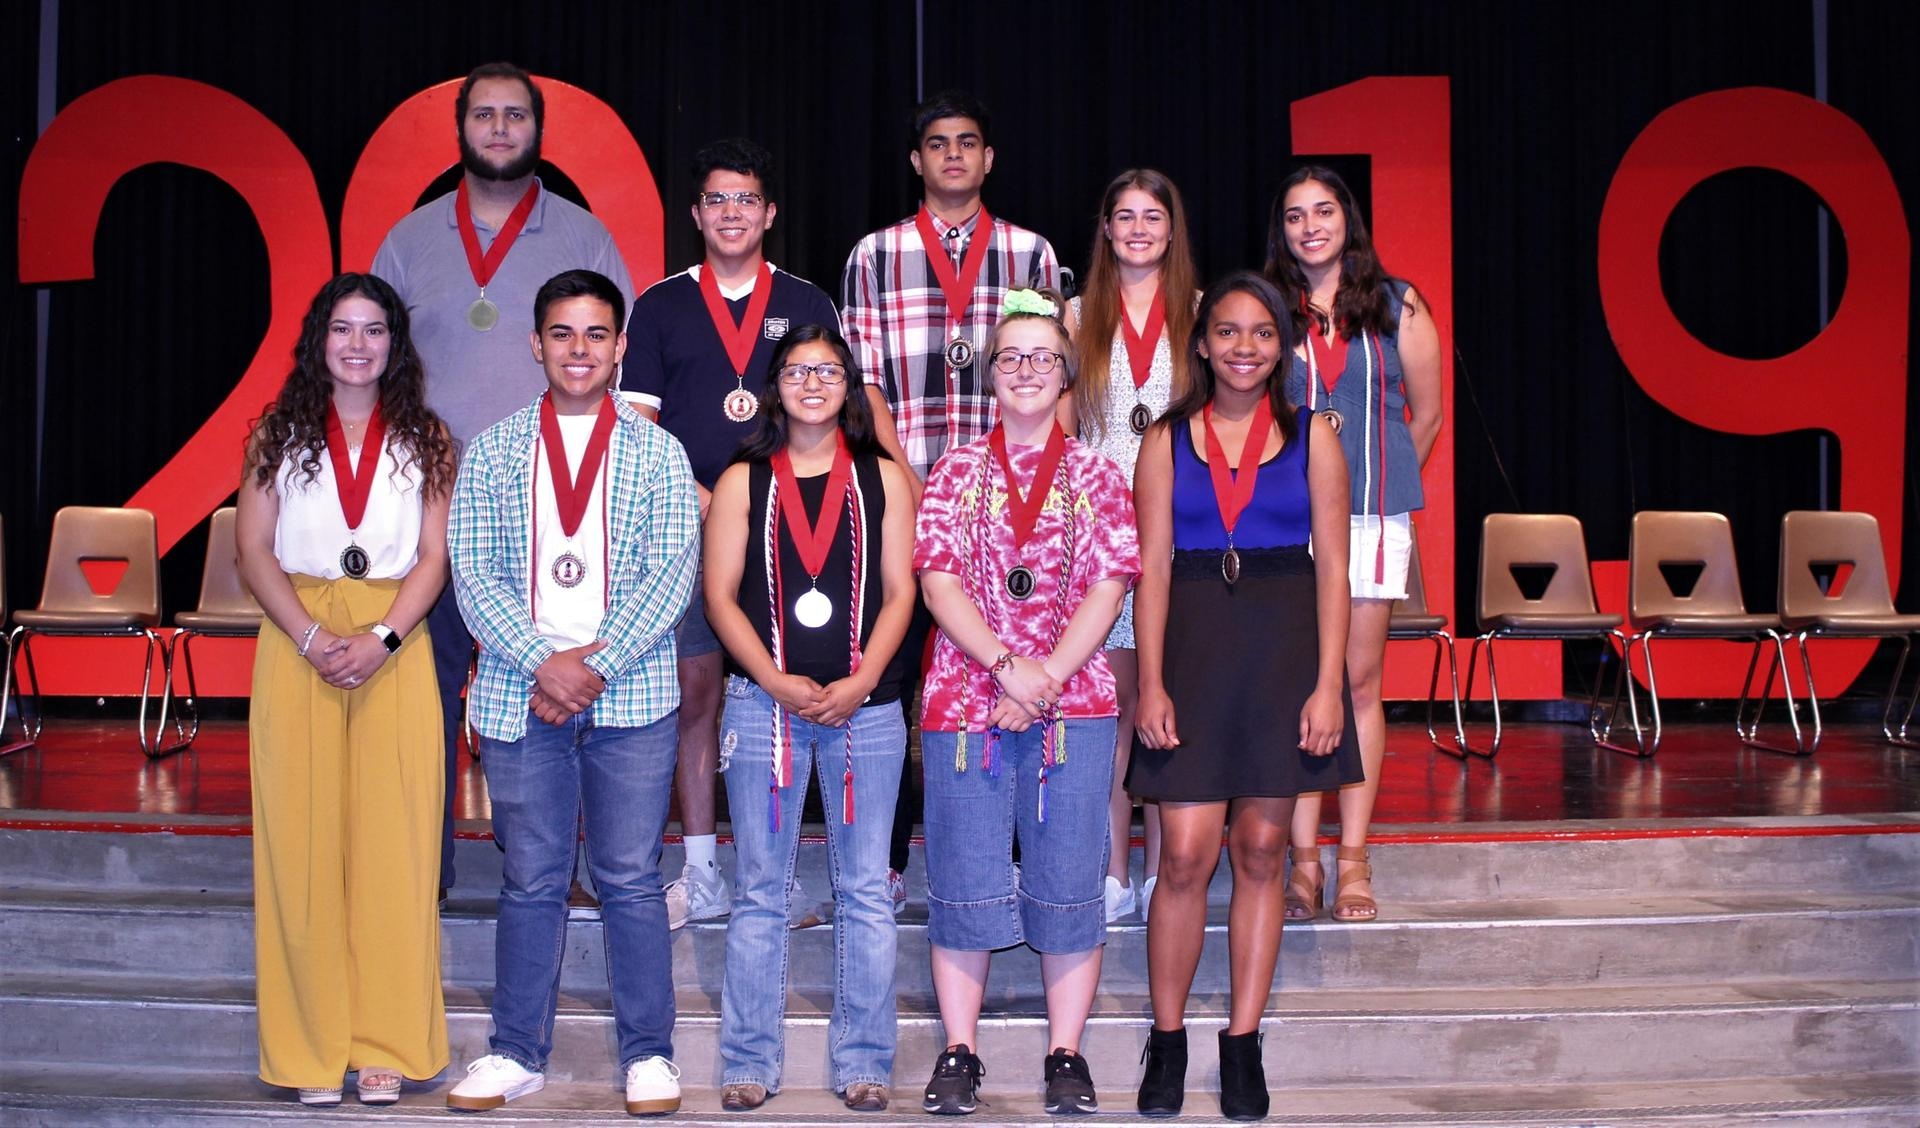 Back: Waseem Musleh, Kristean Robles, Jashandeep Singh, Kylie Hill, Allie Suarez, Front: Morgan Sewell, Nicholas Gargano, Frenchi Salas, Madison Ingraham, Pria Cooper